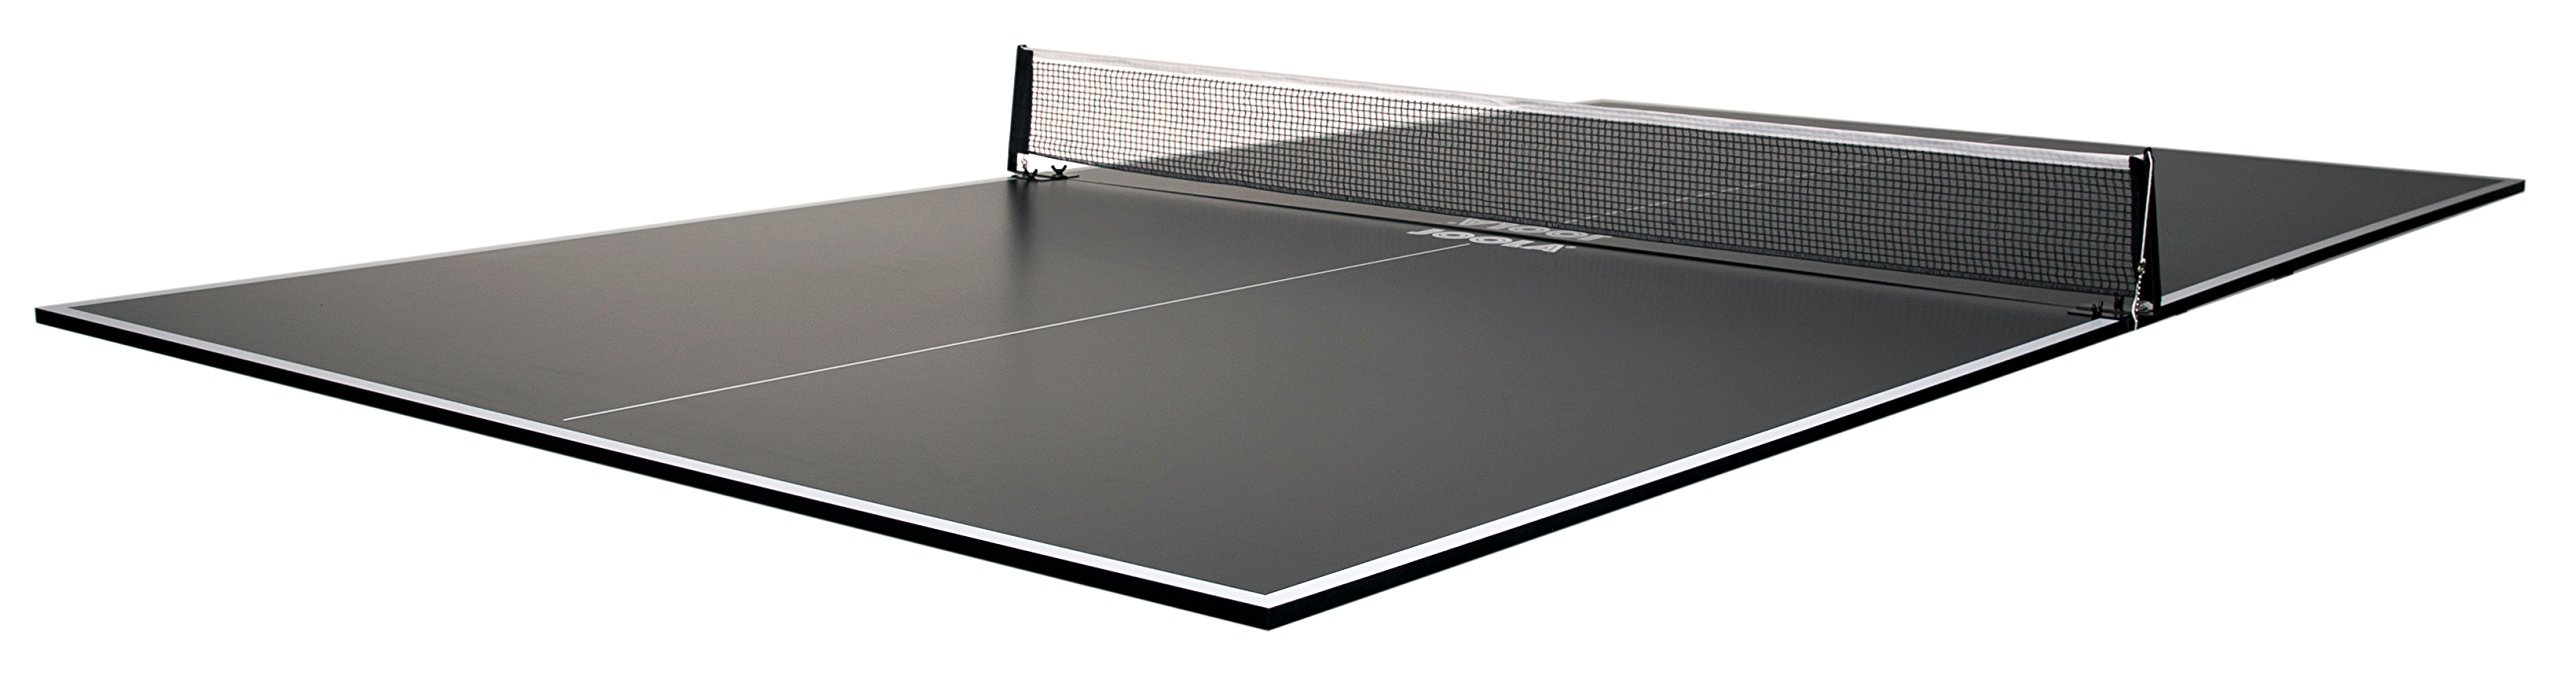 JOOLA Conversion Table Tennis Top with Foam Backing and Net Set